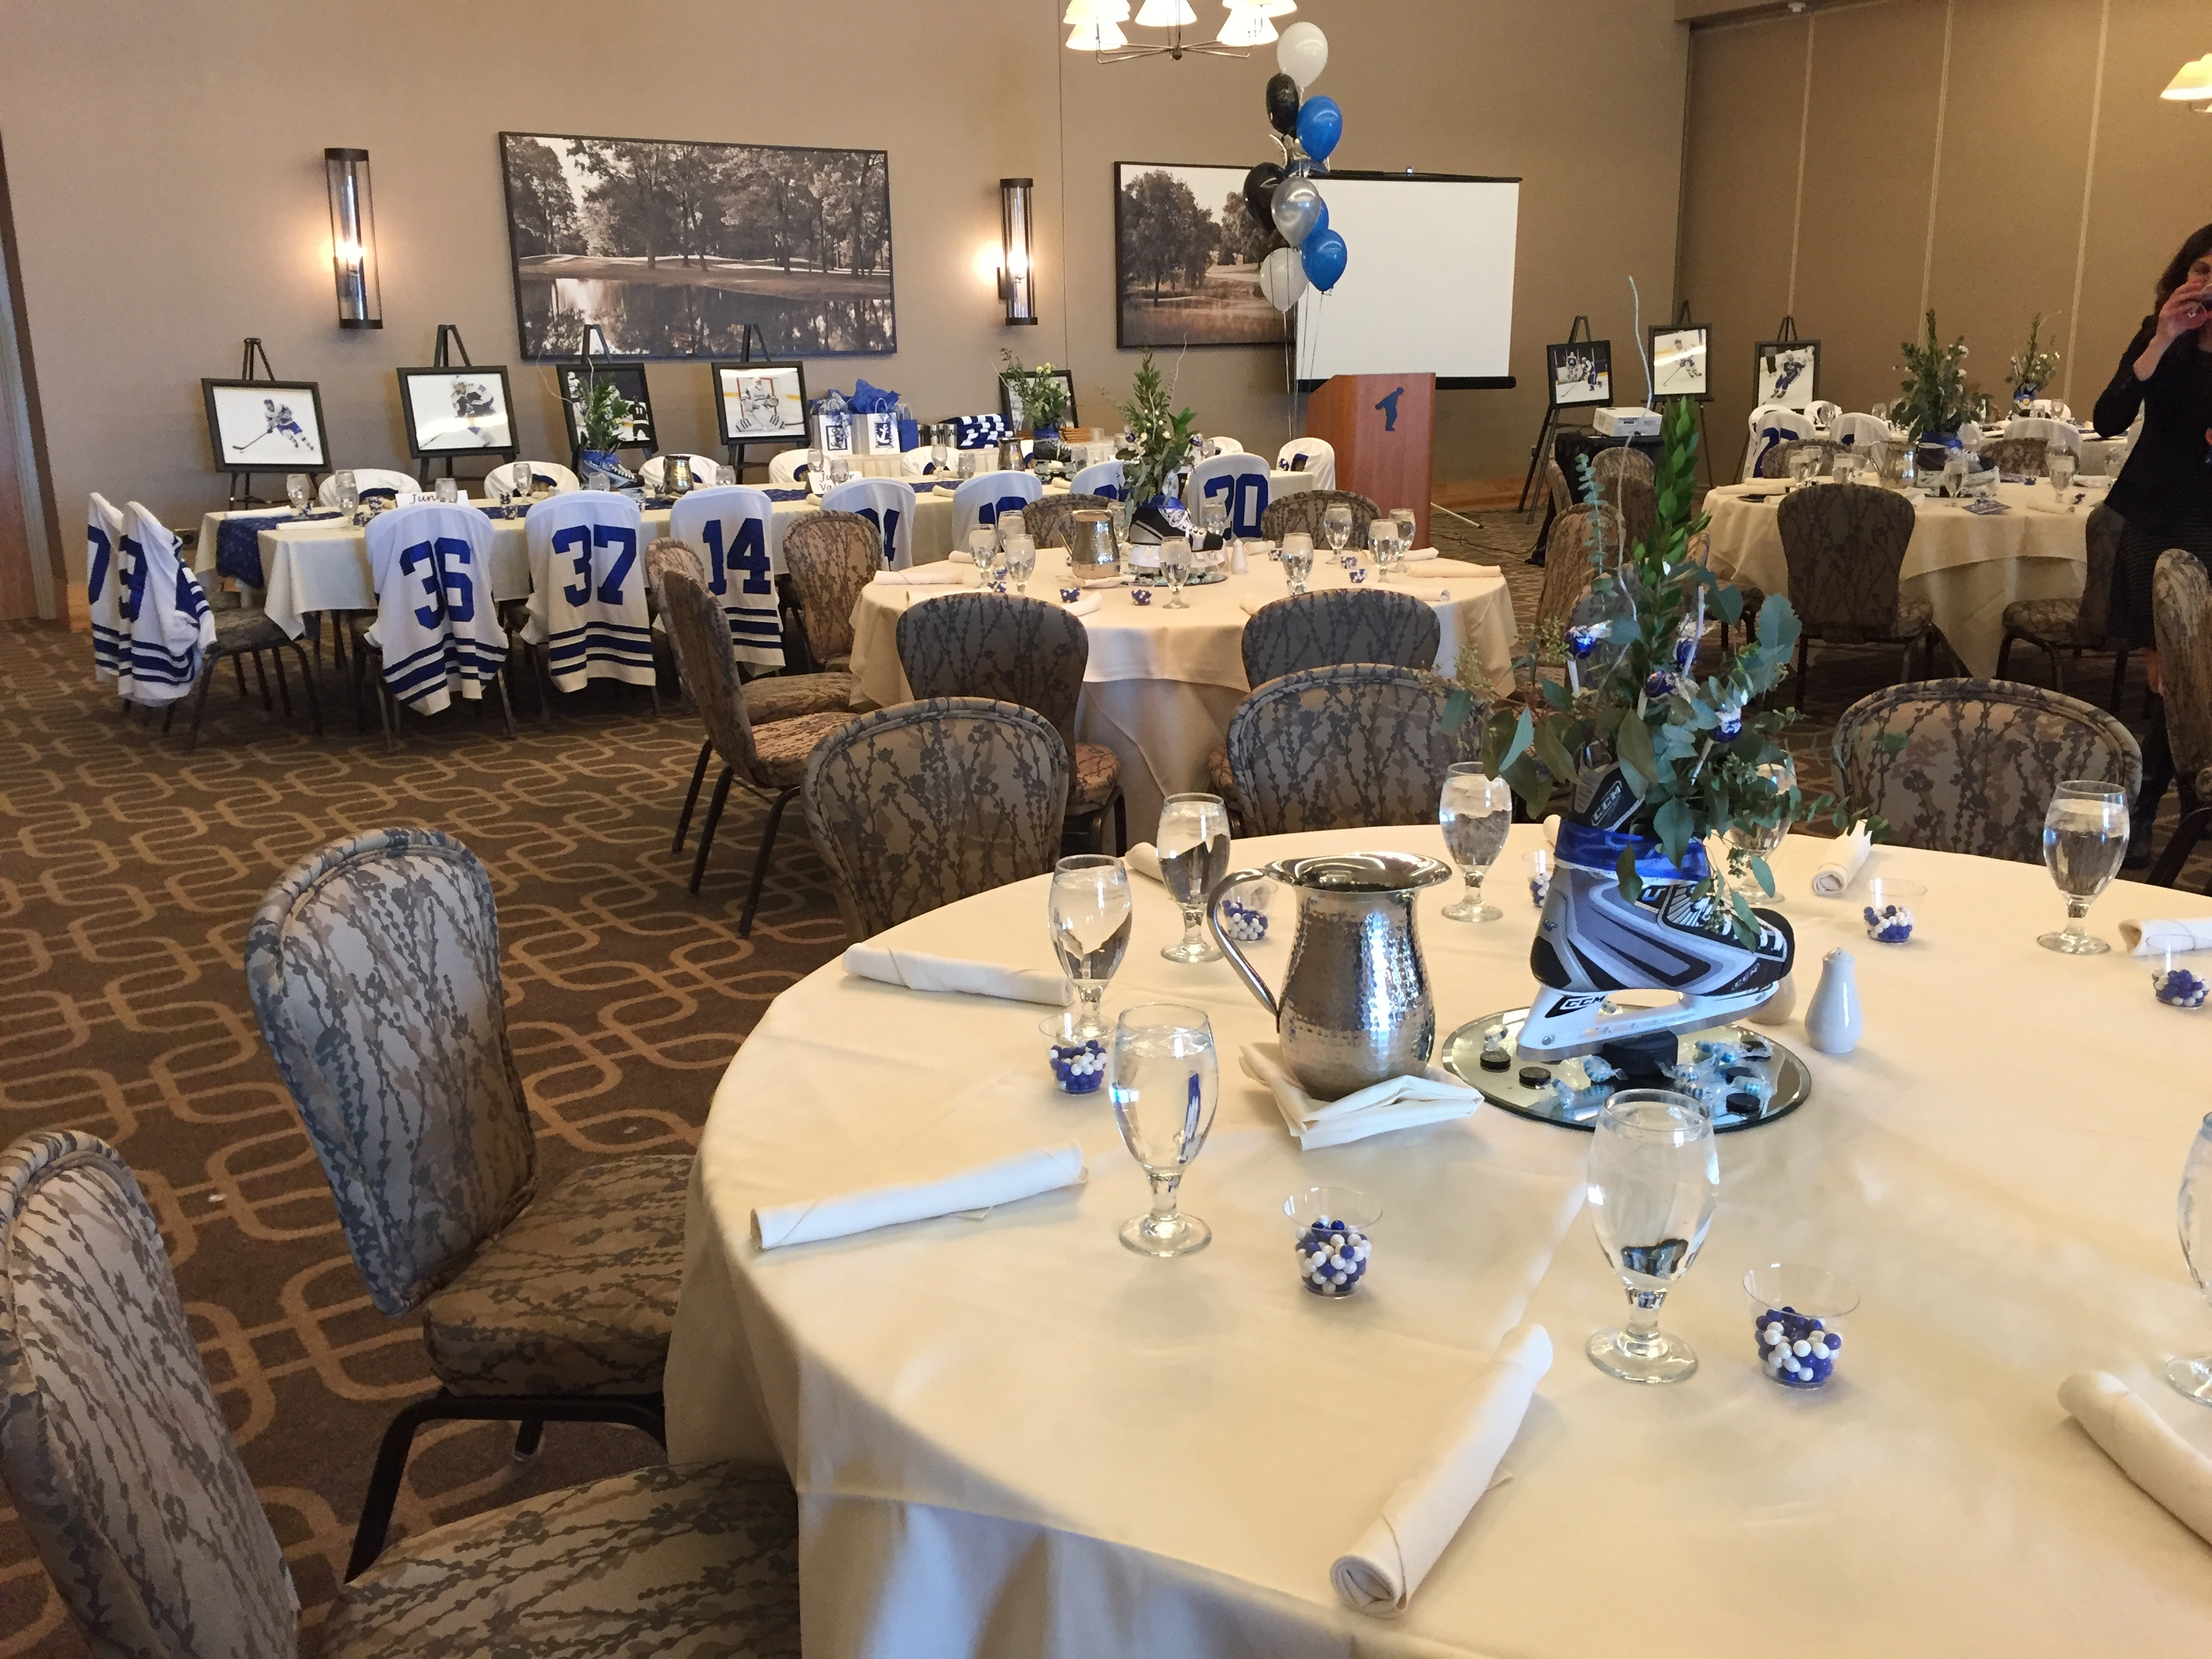 How To Make Your Sports Banquet Special